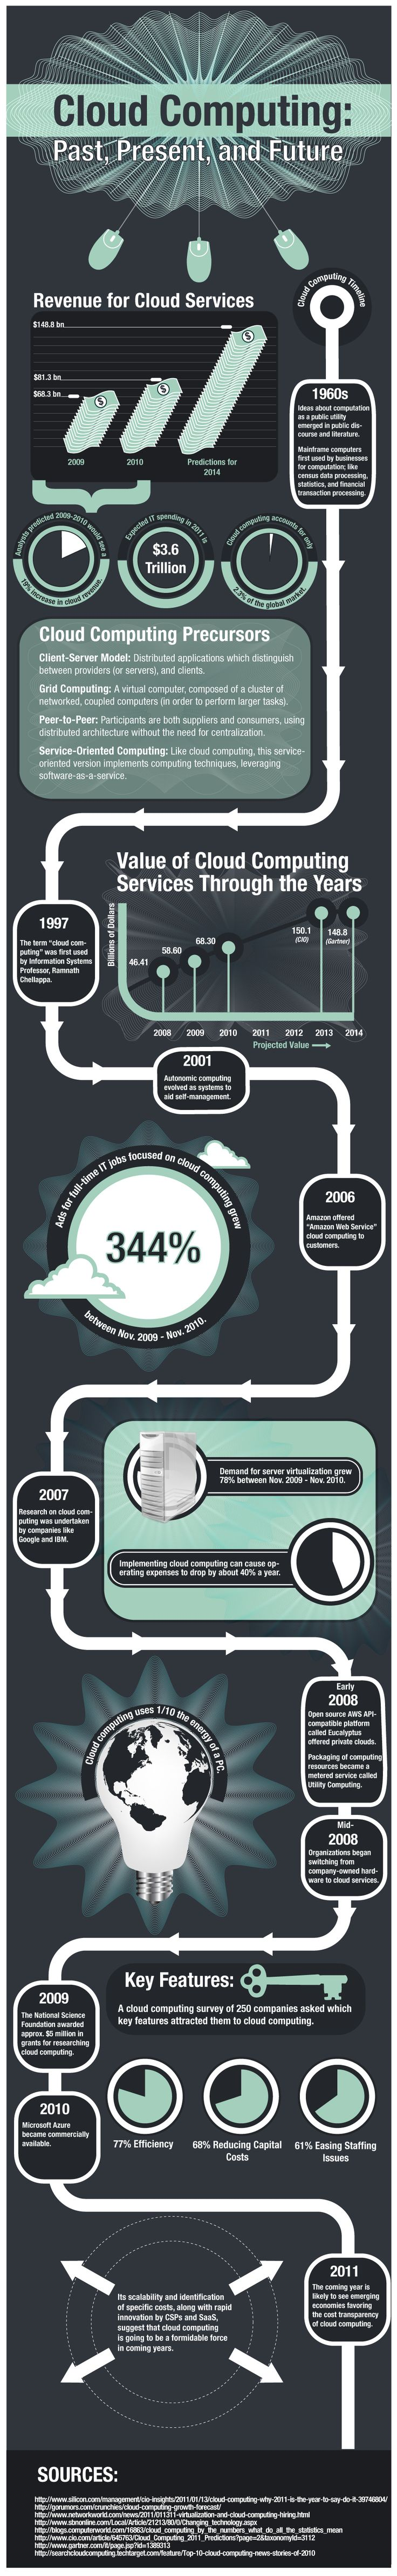 Cloud Computing: Past, Present and Future [INFOGRAPHIC]